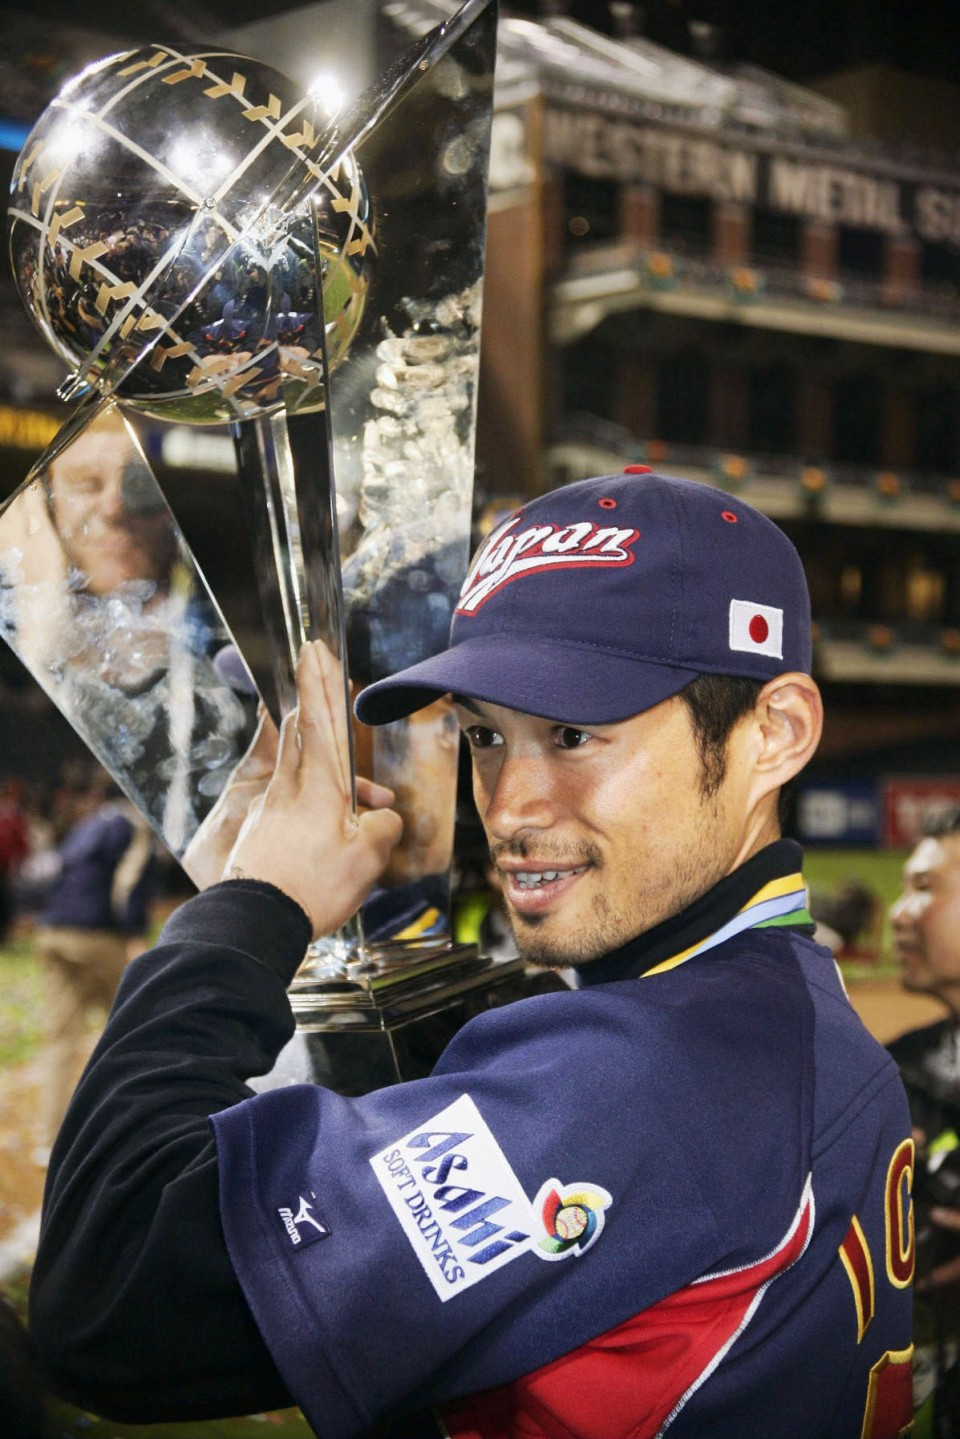 reputable site dba5a c18ef IN PHOTOS: Baseball star Ichiro Suzuki's career highlights